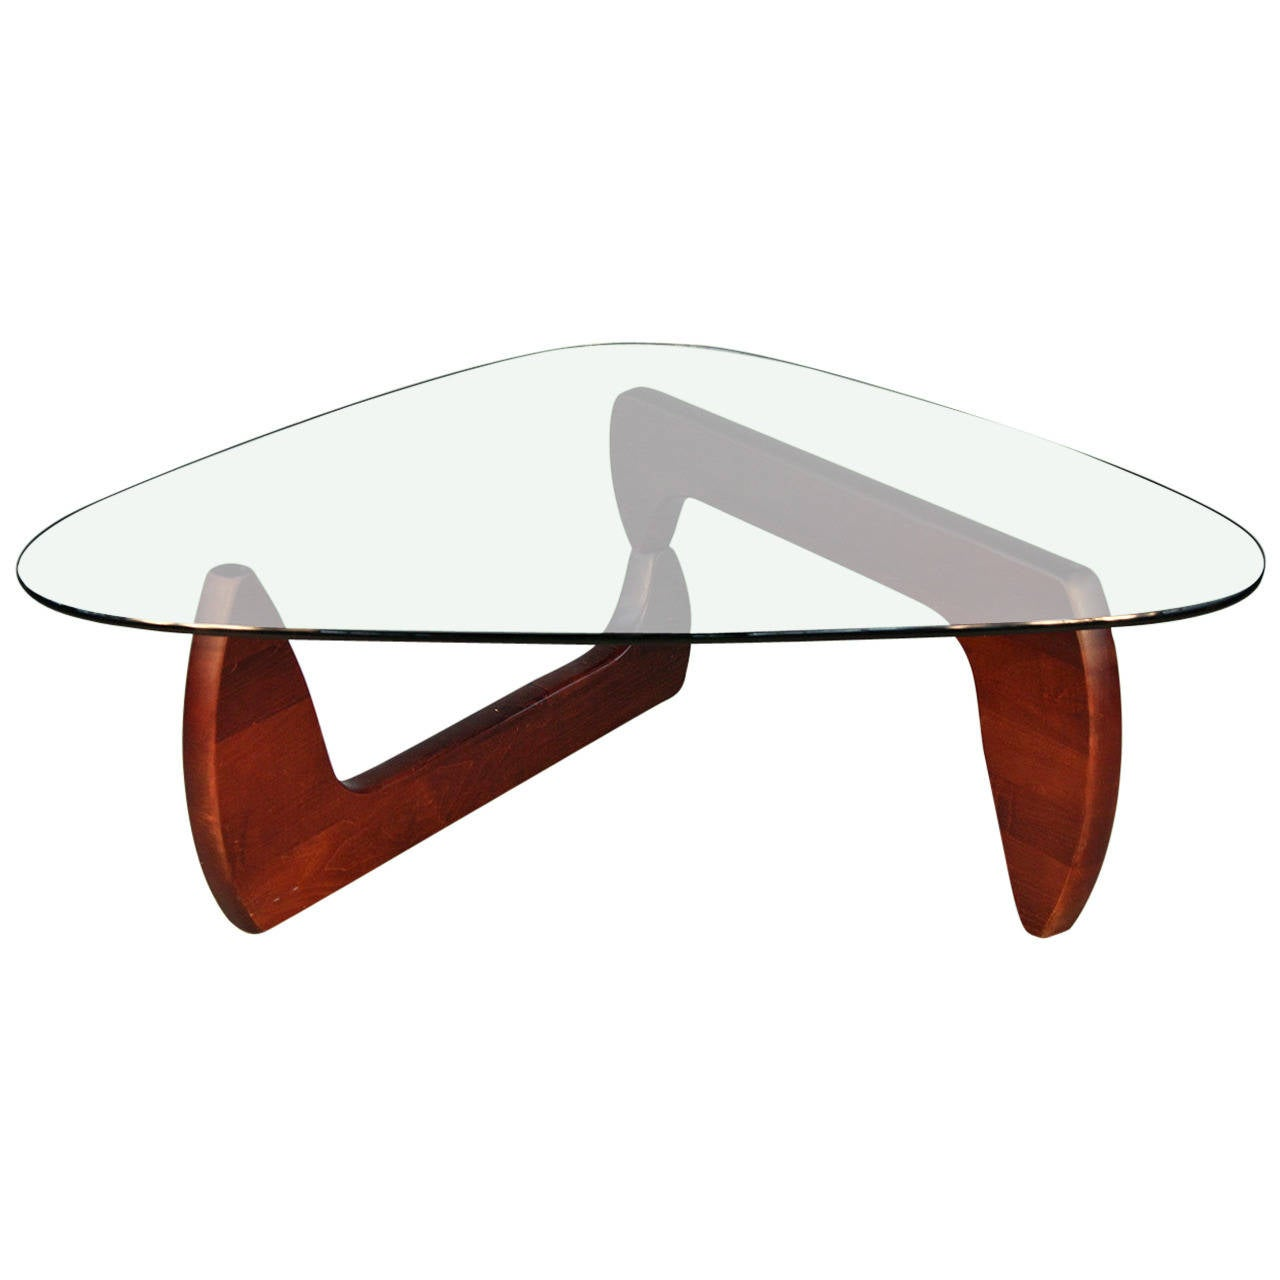 noguchi style coffee table with glass top at 1stdibs. Black Bedroom Furniture Sets. Home Design Ideas